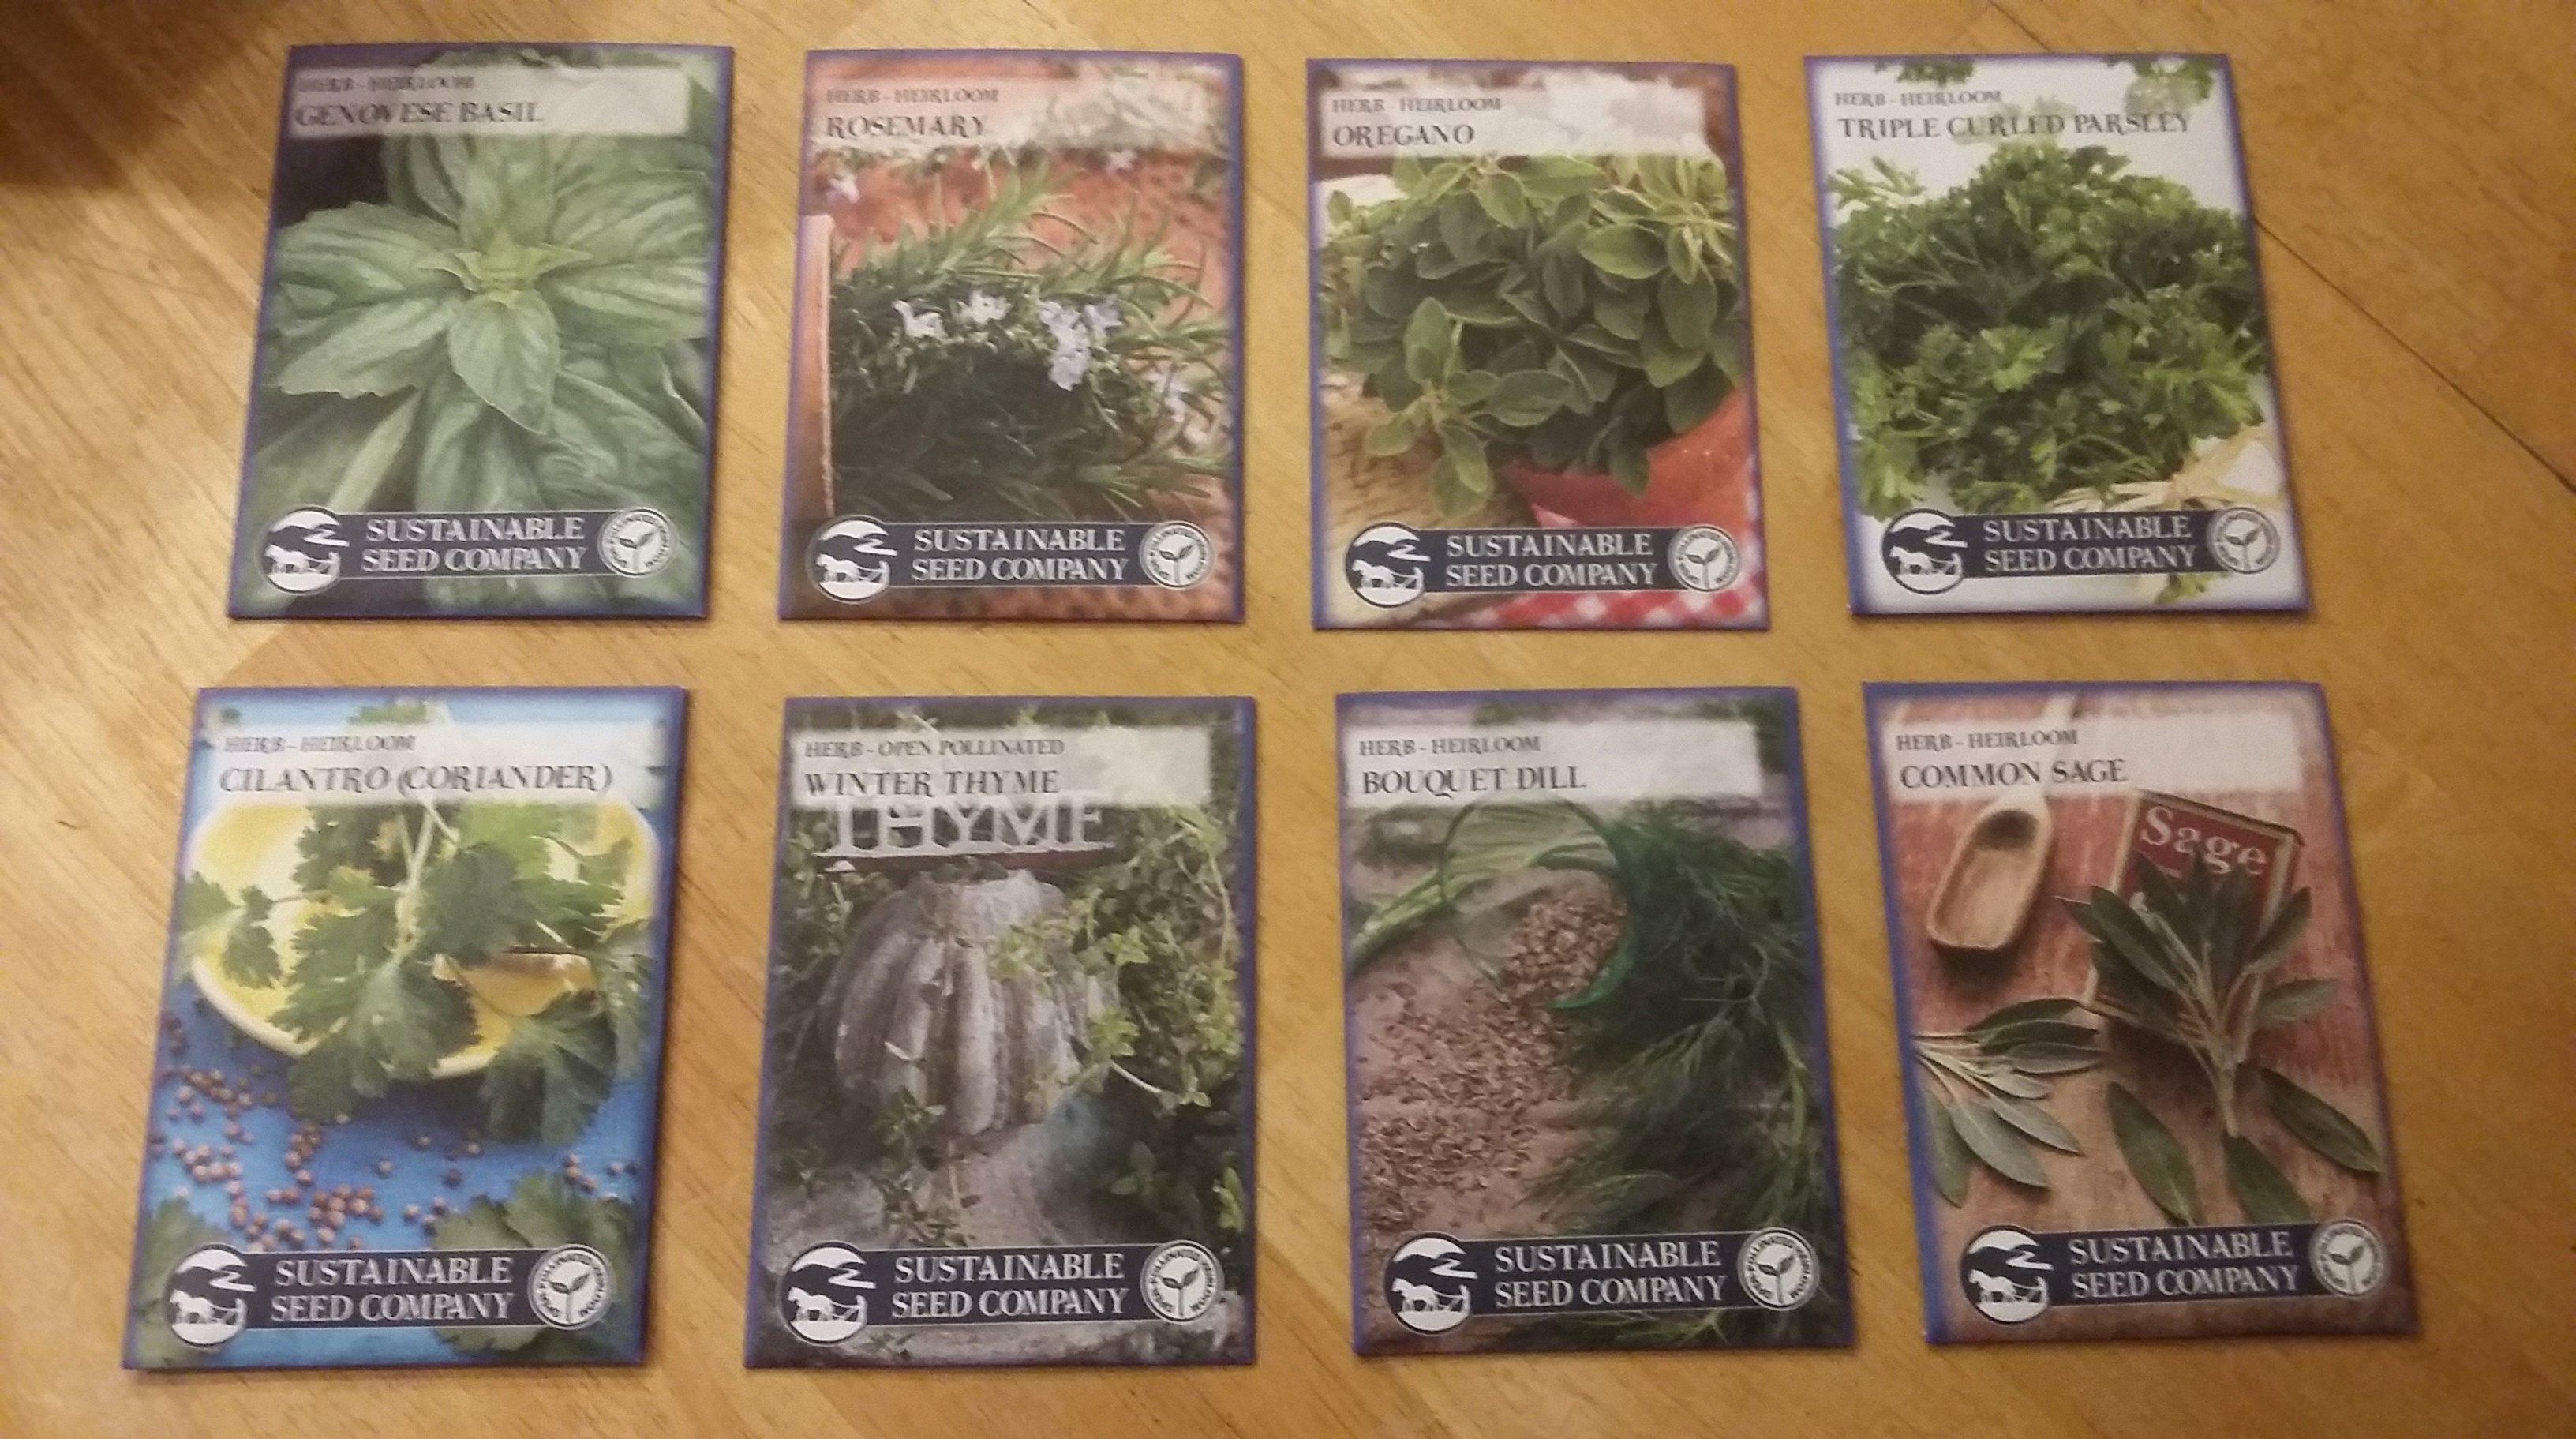 8 herb packets arranged in two rows and four columns. The herbs include basil, rosemary, oregano, parsley, cilantro, thyme, dill, and sage.